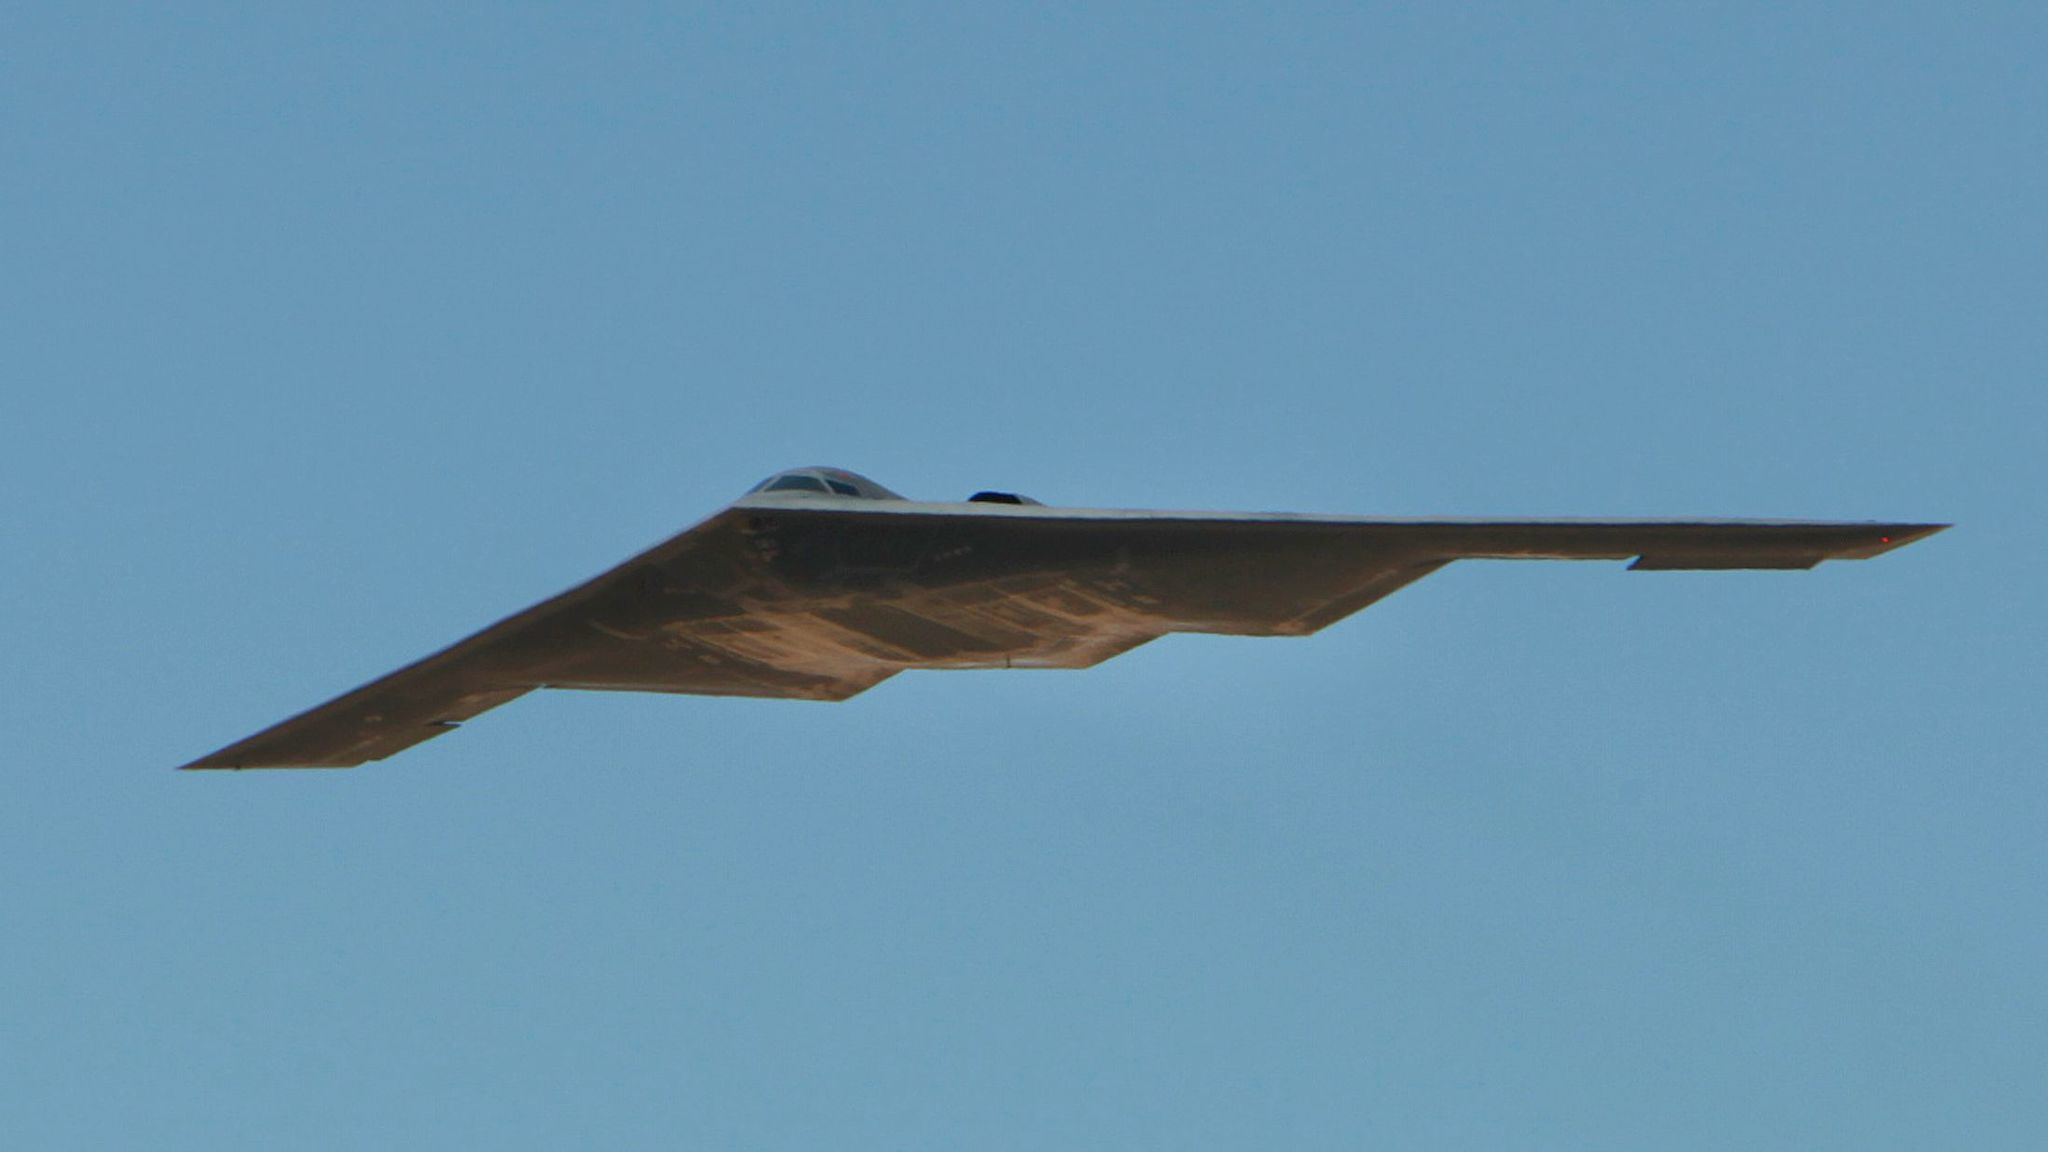 The U.S. Air Force's B-2 Spirit Stealth bomber flies over Northrop Grumman Corp.'s facility at U.S. Air Force Plant 42 in Palmdale in 2014.